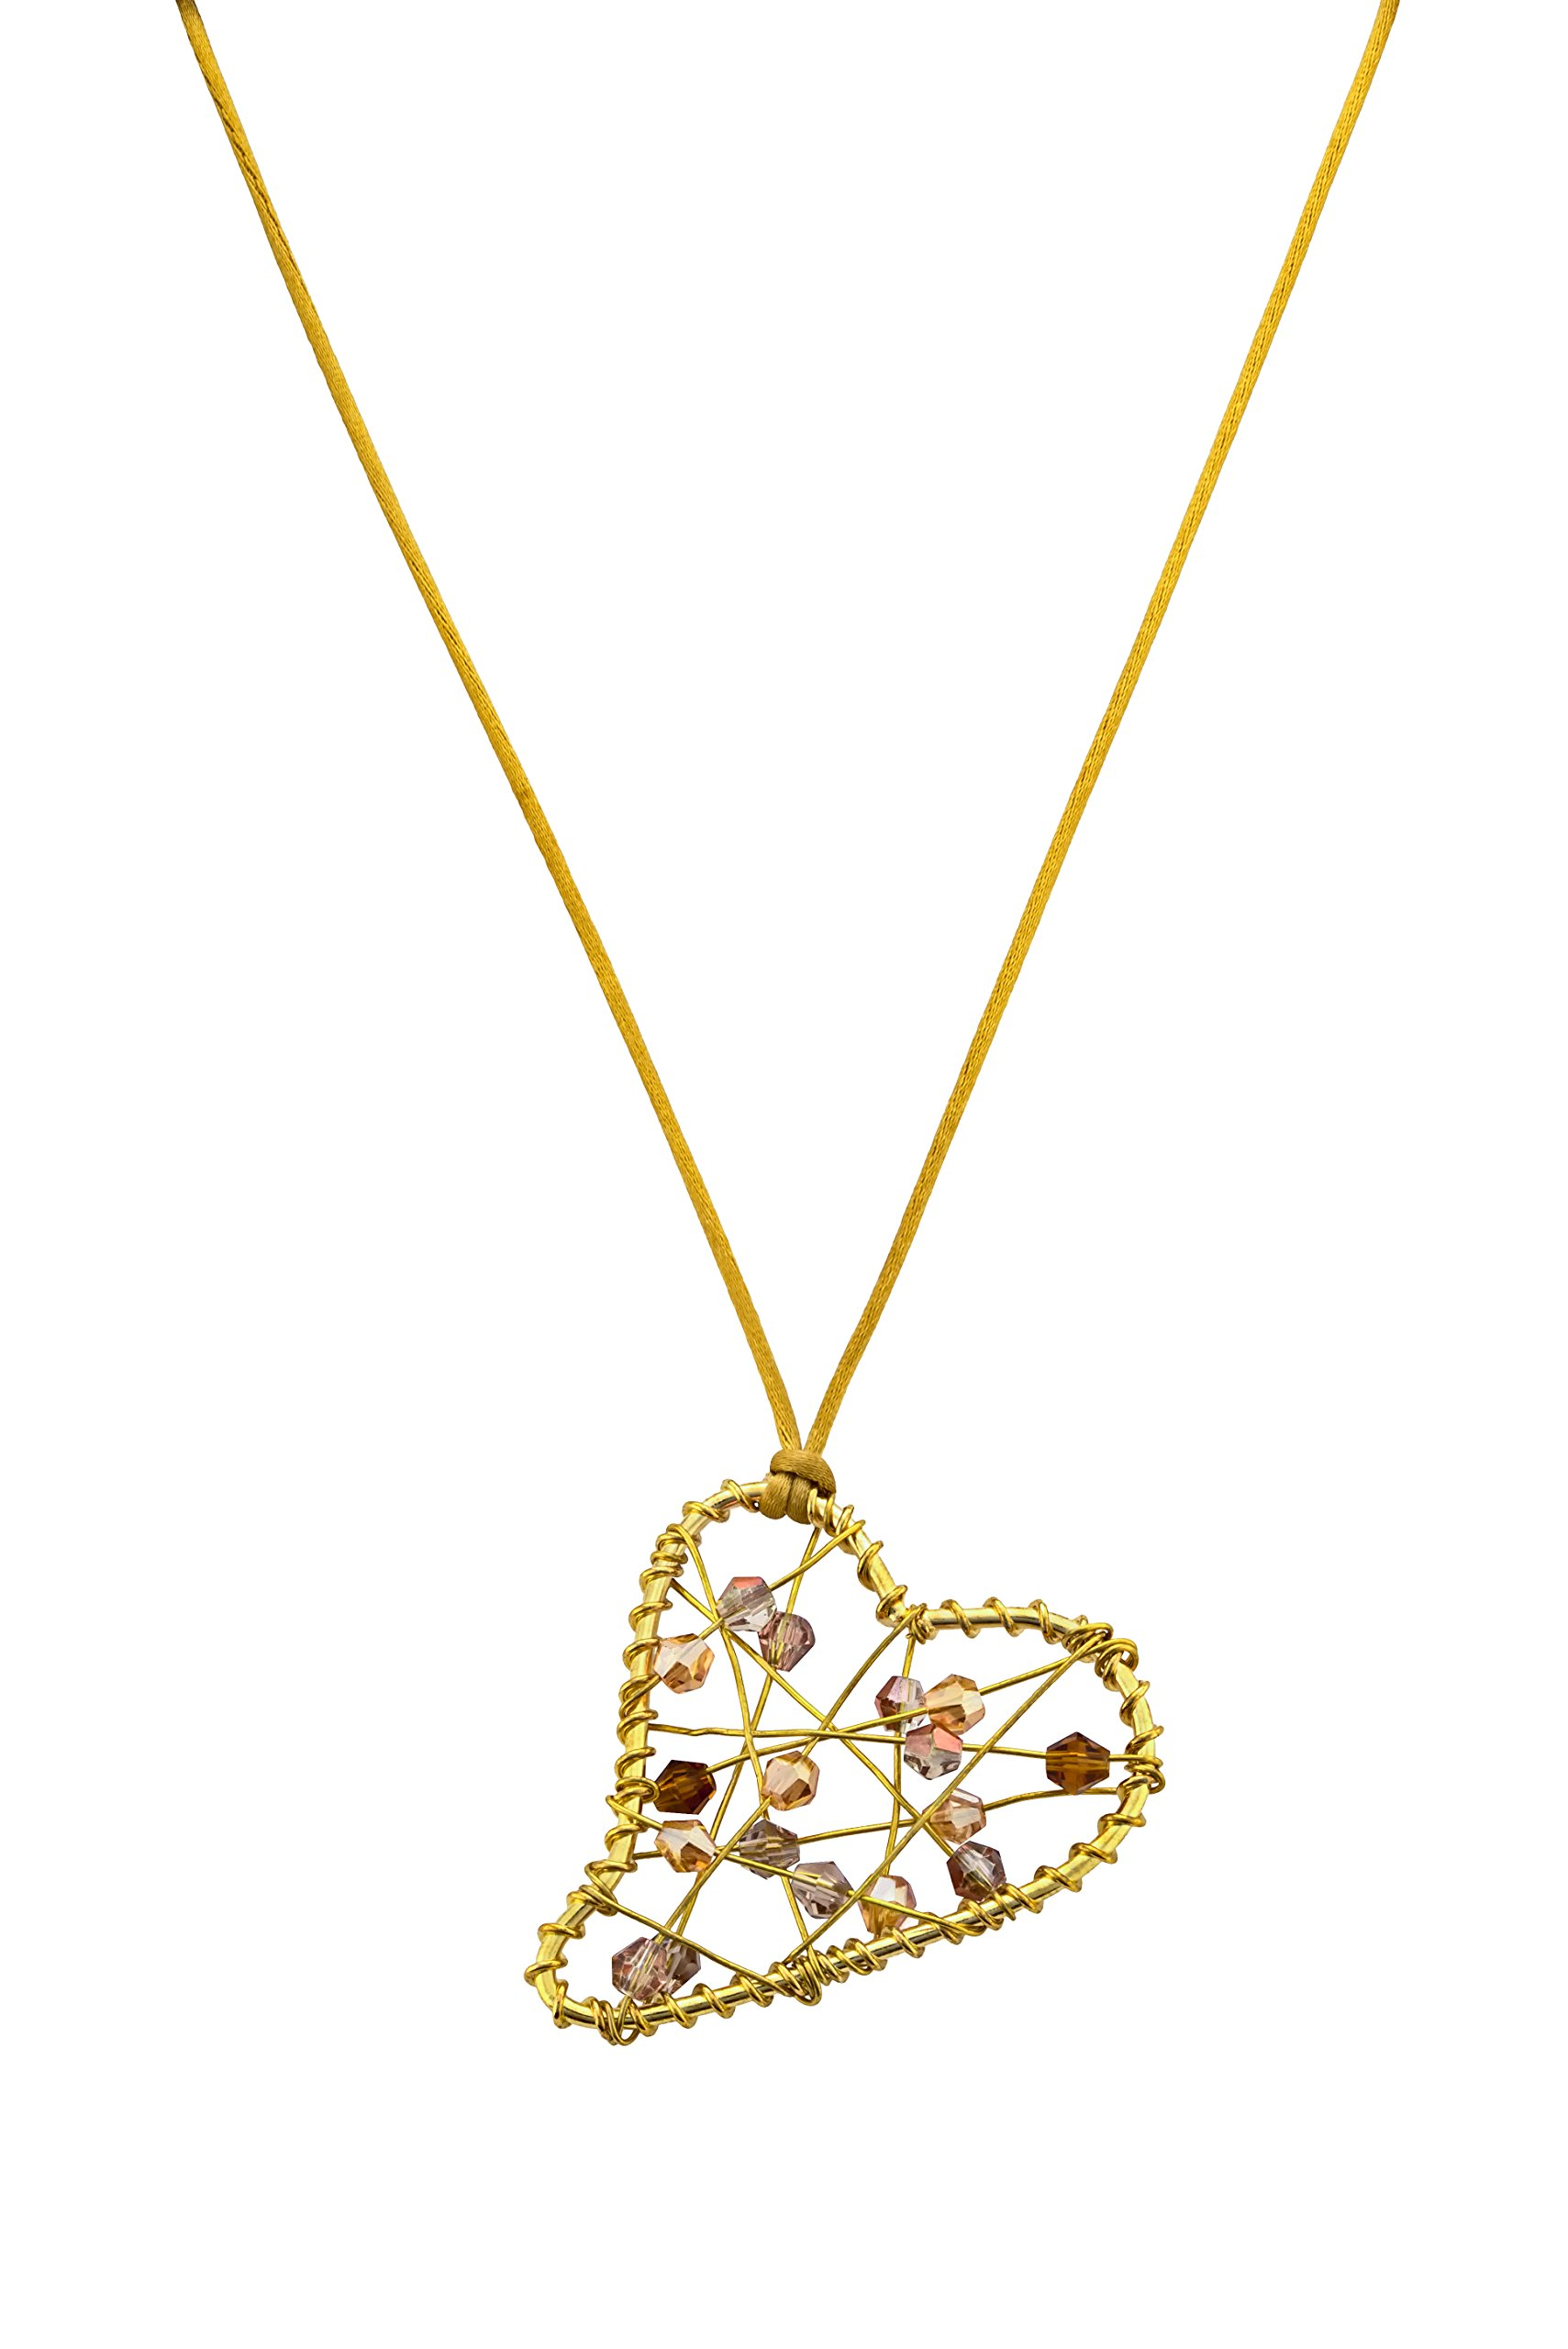 Fairy Gems Gilded Hearts Upscale Luxury Jewelry Making Kit - Gold Shaped Heart Pendant Necklace with Webbed Strands of Beads. Great Fun Custom Crafts for Kids, Teens & Group Activity Projects